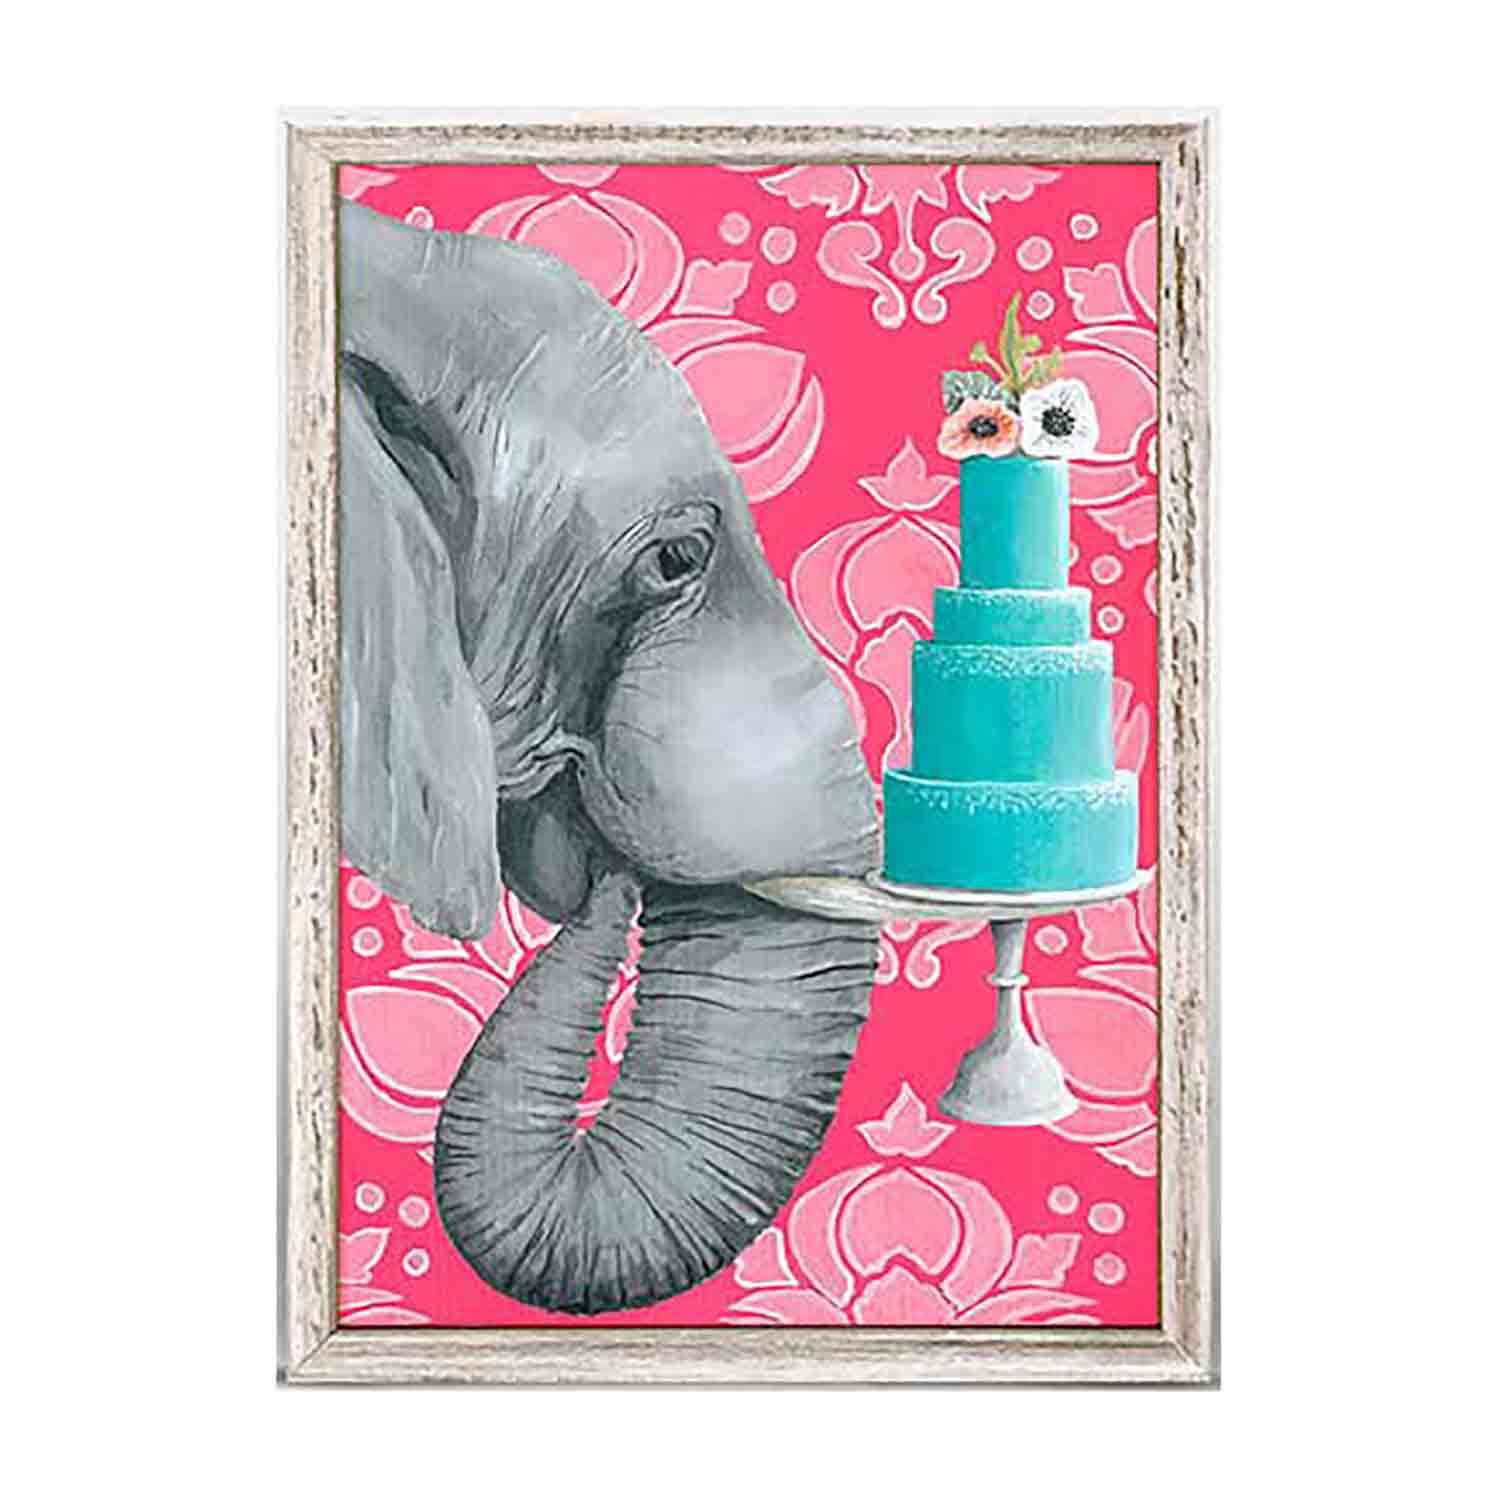 Ele With Cake Mini Framed Canvas